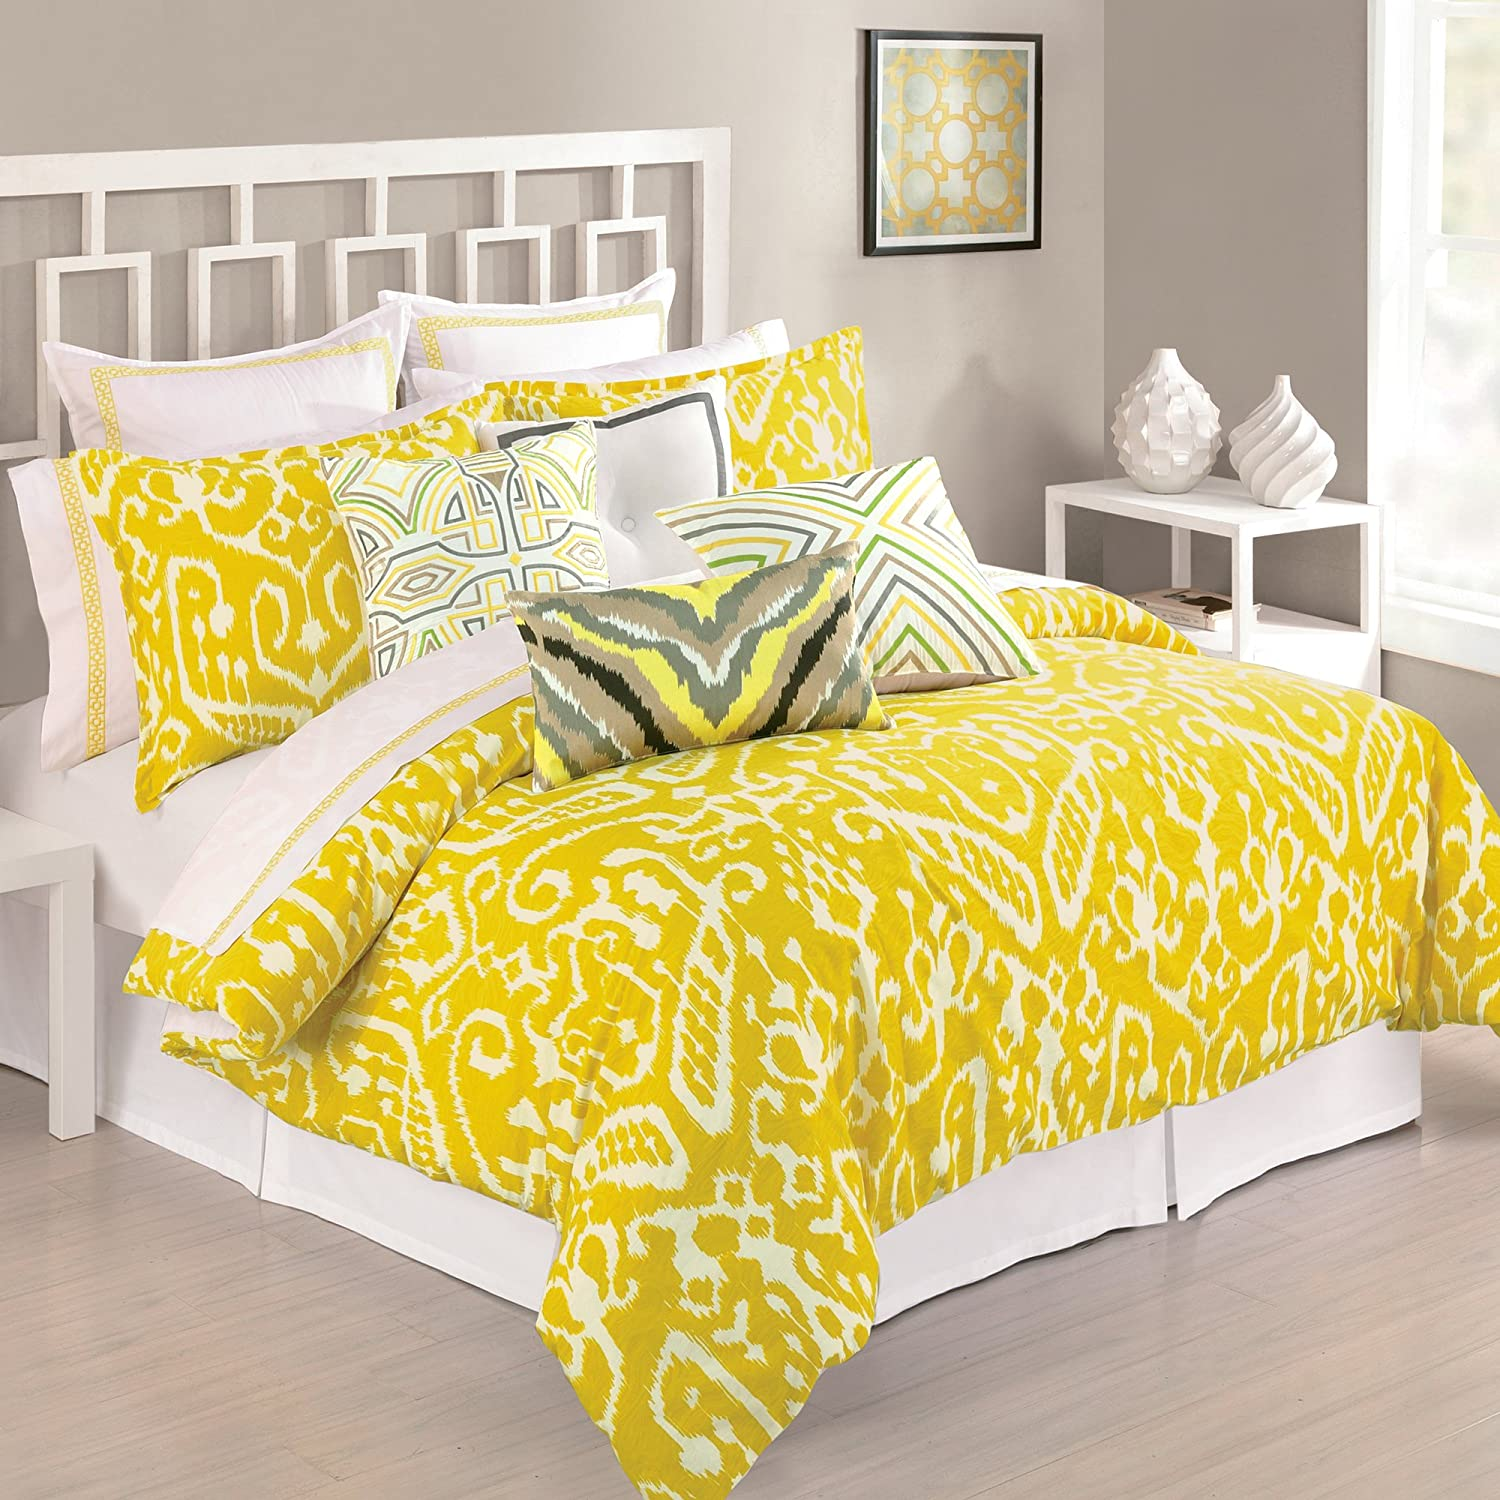 Amazoncom Trina Turk Piece Ikat Comforter Set King Yellow - Blue and yellow comforter sets king